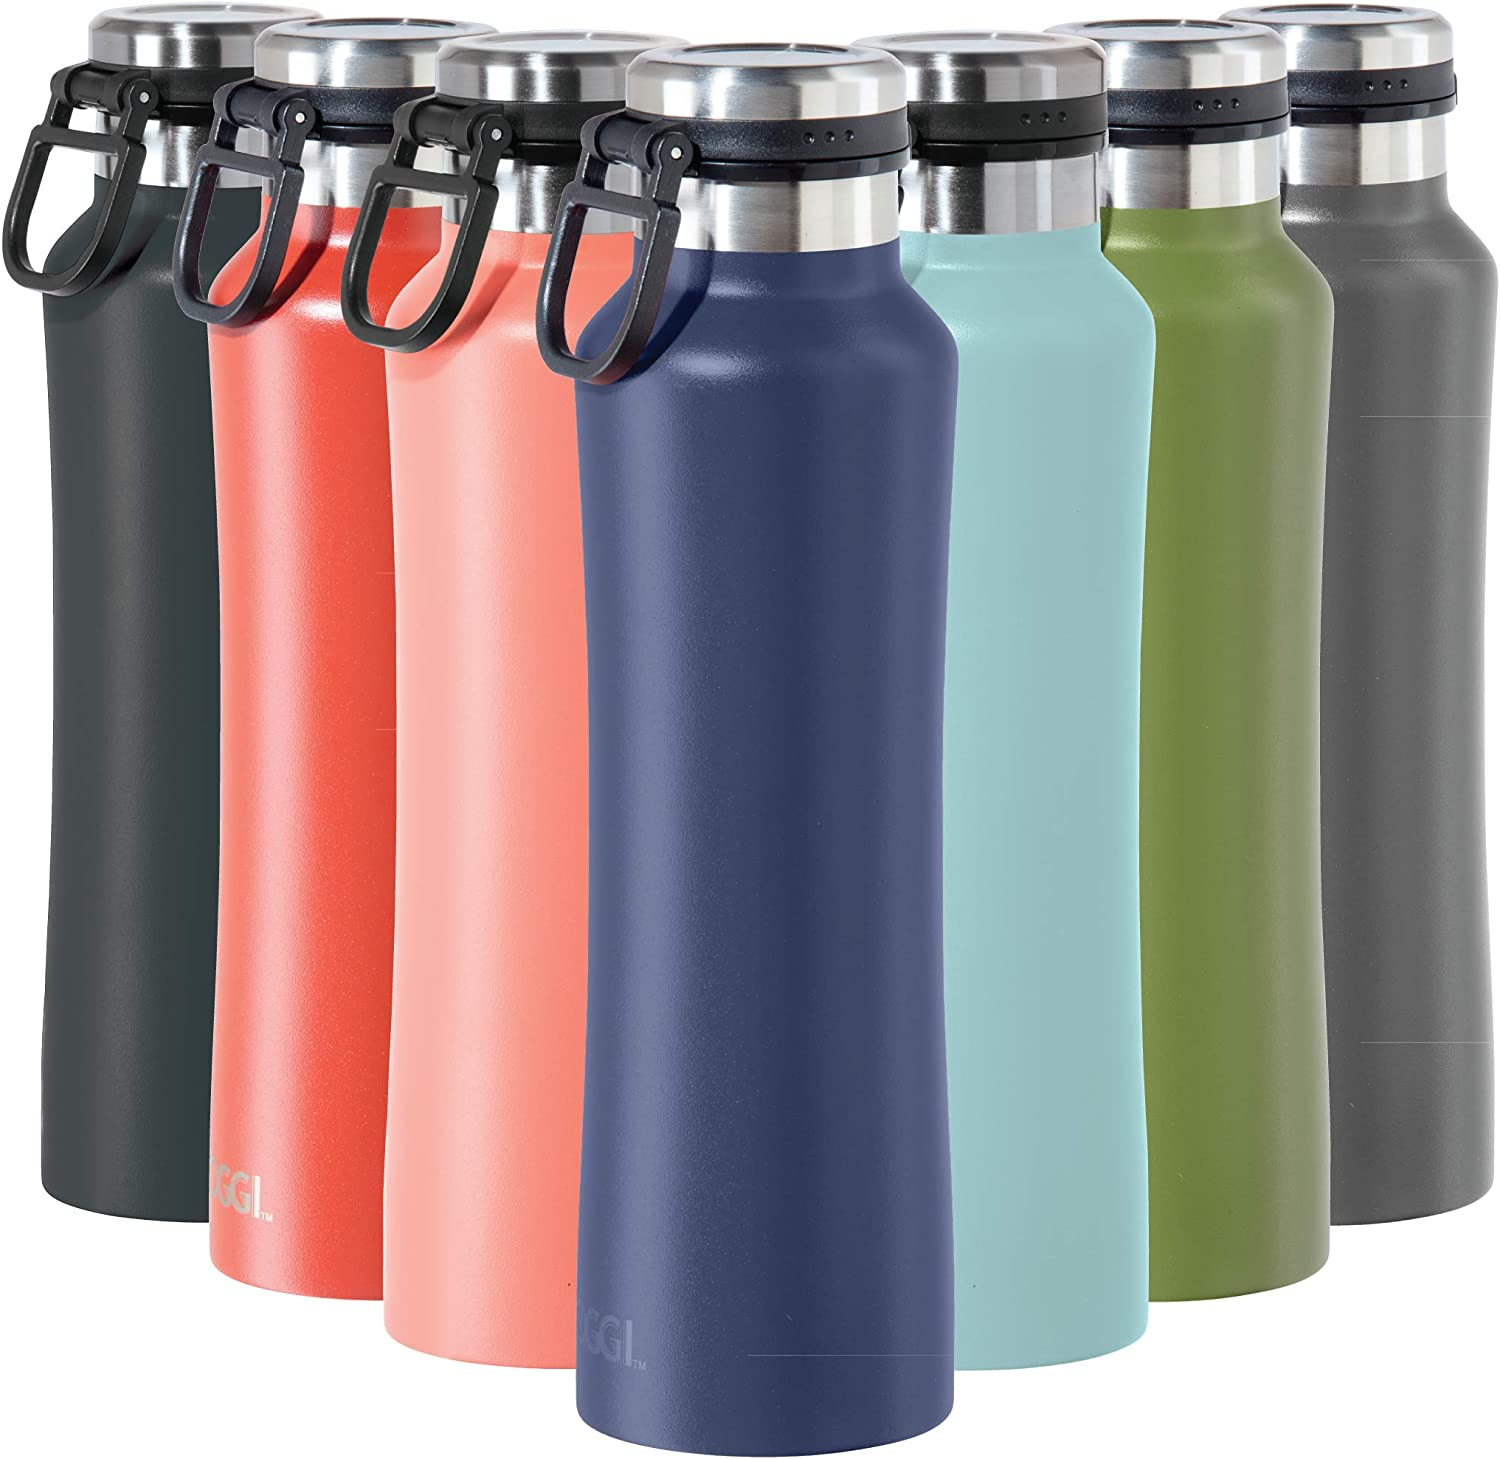 Oggi Summit Vacuum Insulated Stainless Steel Bottle - Midnight Blue, 19 oz, with flip top lid and easy grip carrying handle for hot and cold beverages.